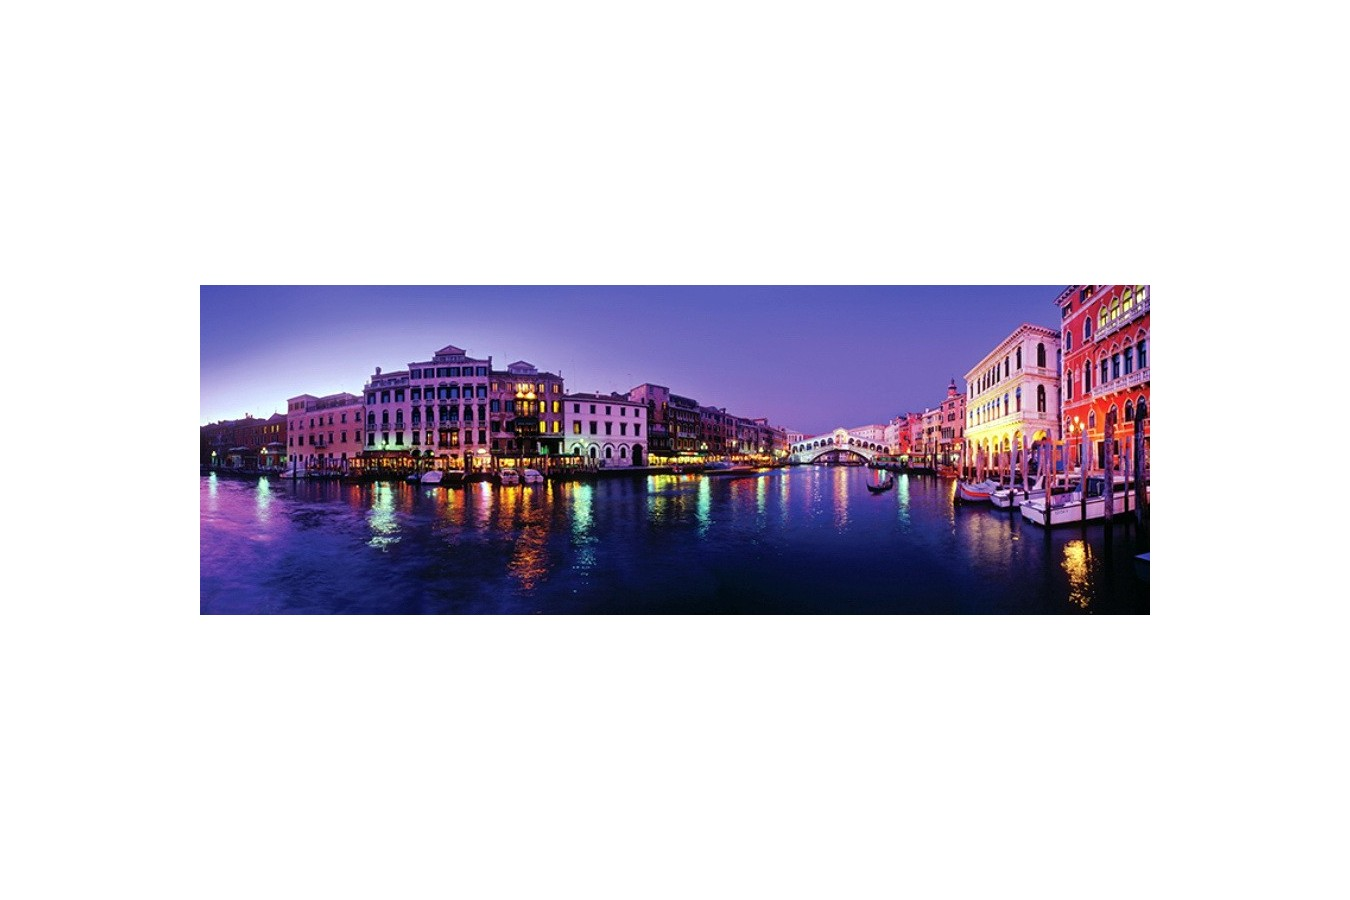 Puzzle Anatolian - Grand Canal, 1000 piese, panoramic (3184)